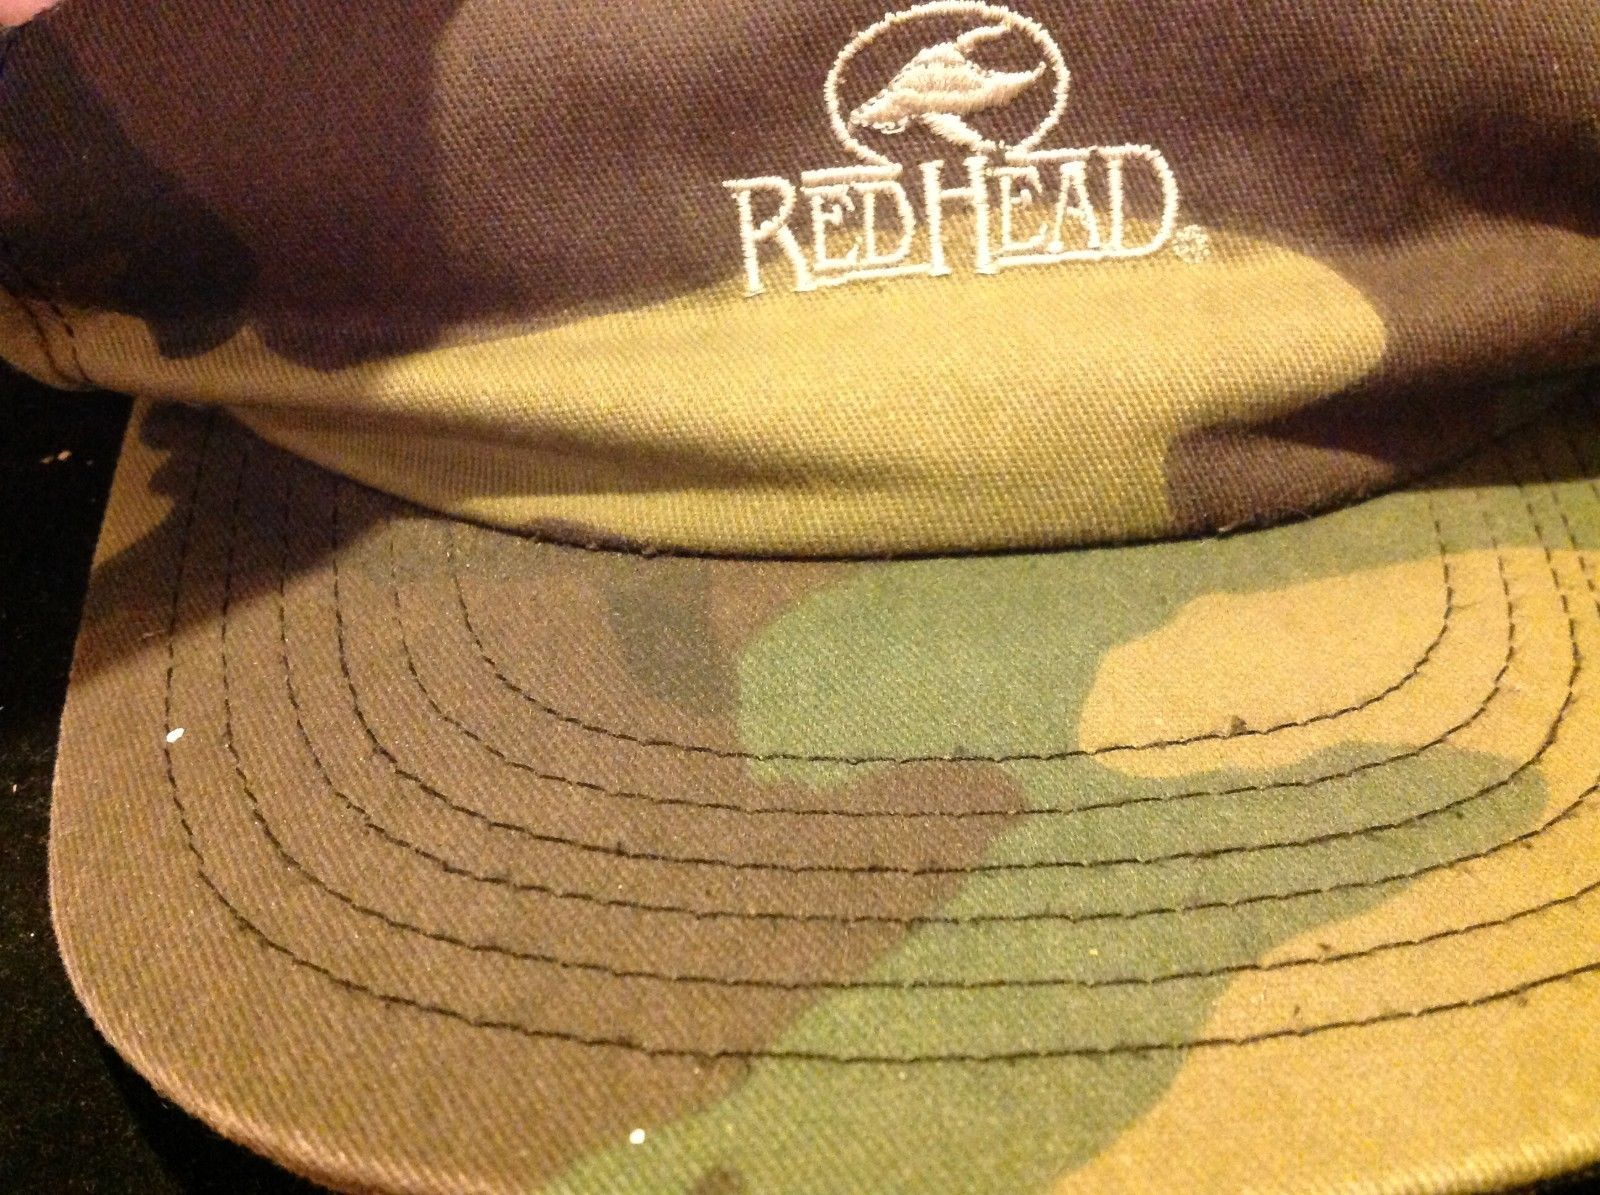 red head brand military hat color olive grenn